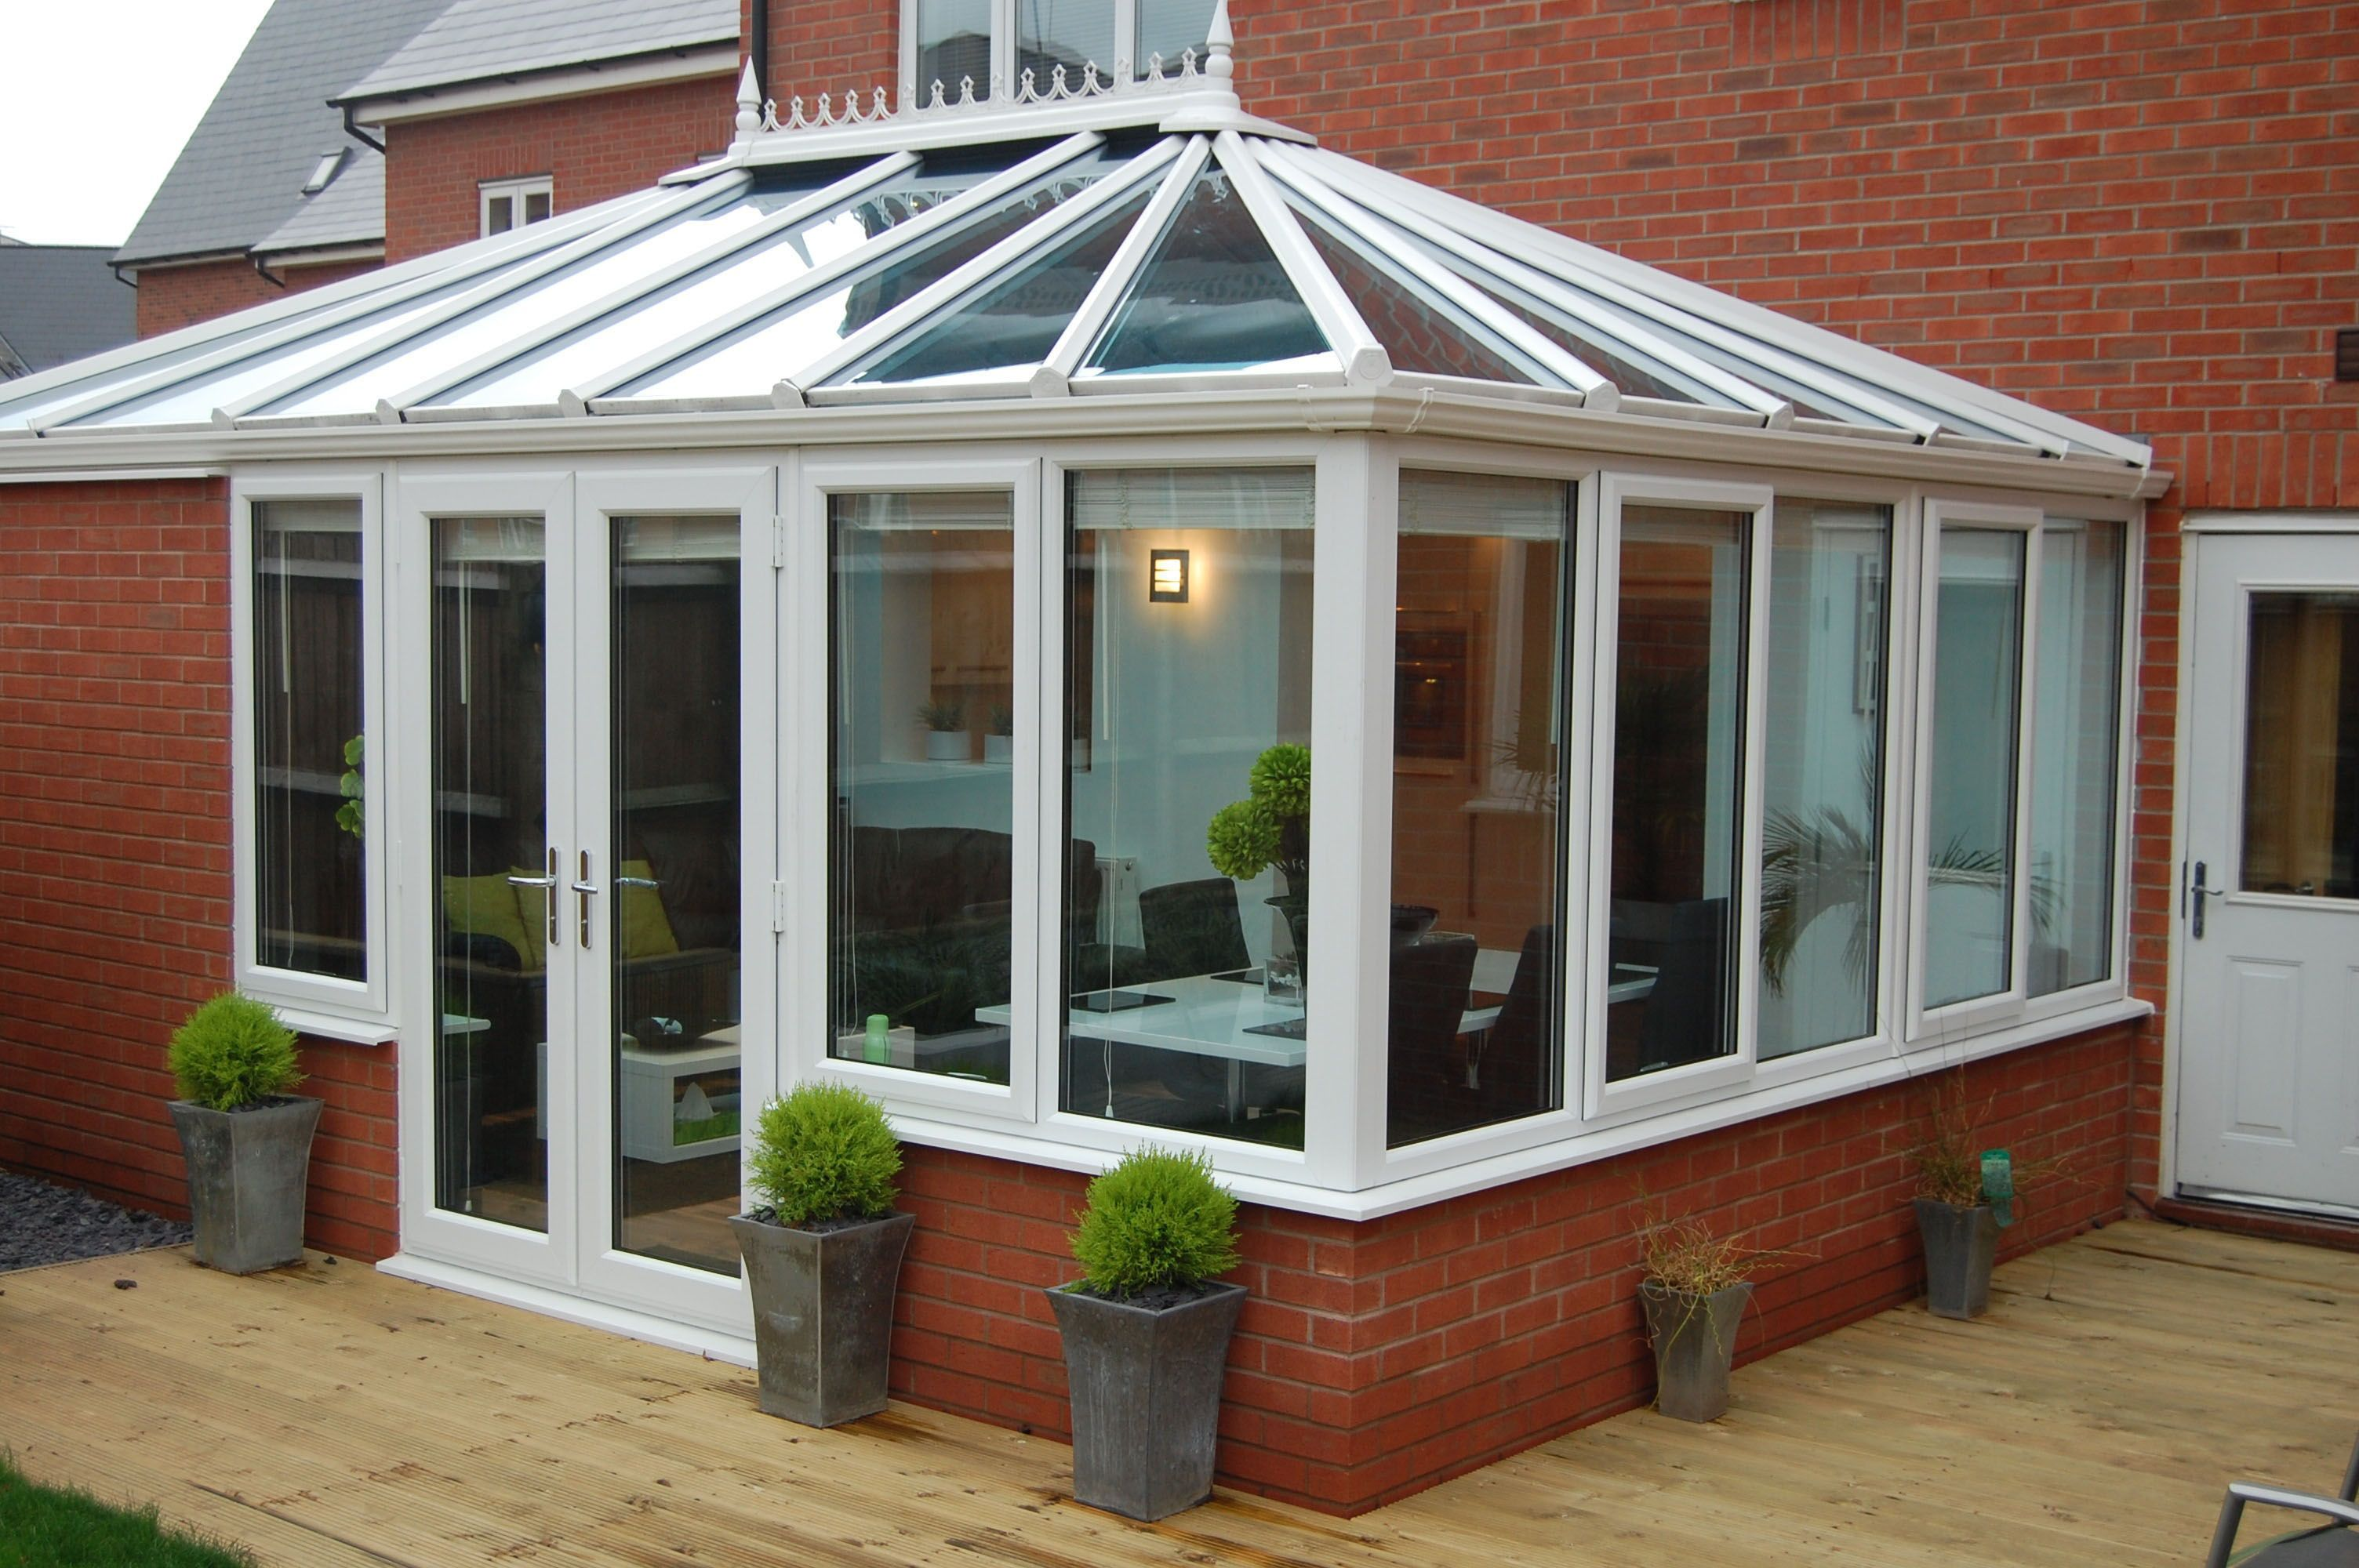 Do You Like This Style Of Conservatory Would You Like Something Similar For Your Own Home You Can Get A Free No Obl Idei Ustrojstva Zadnego Dvora Veranda Dom